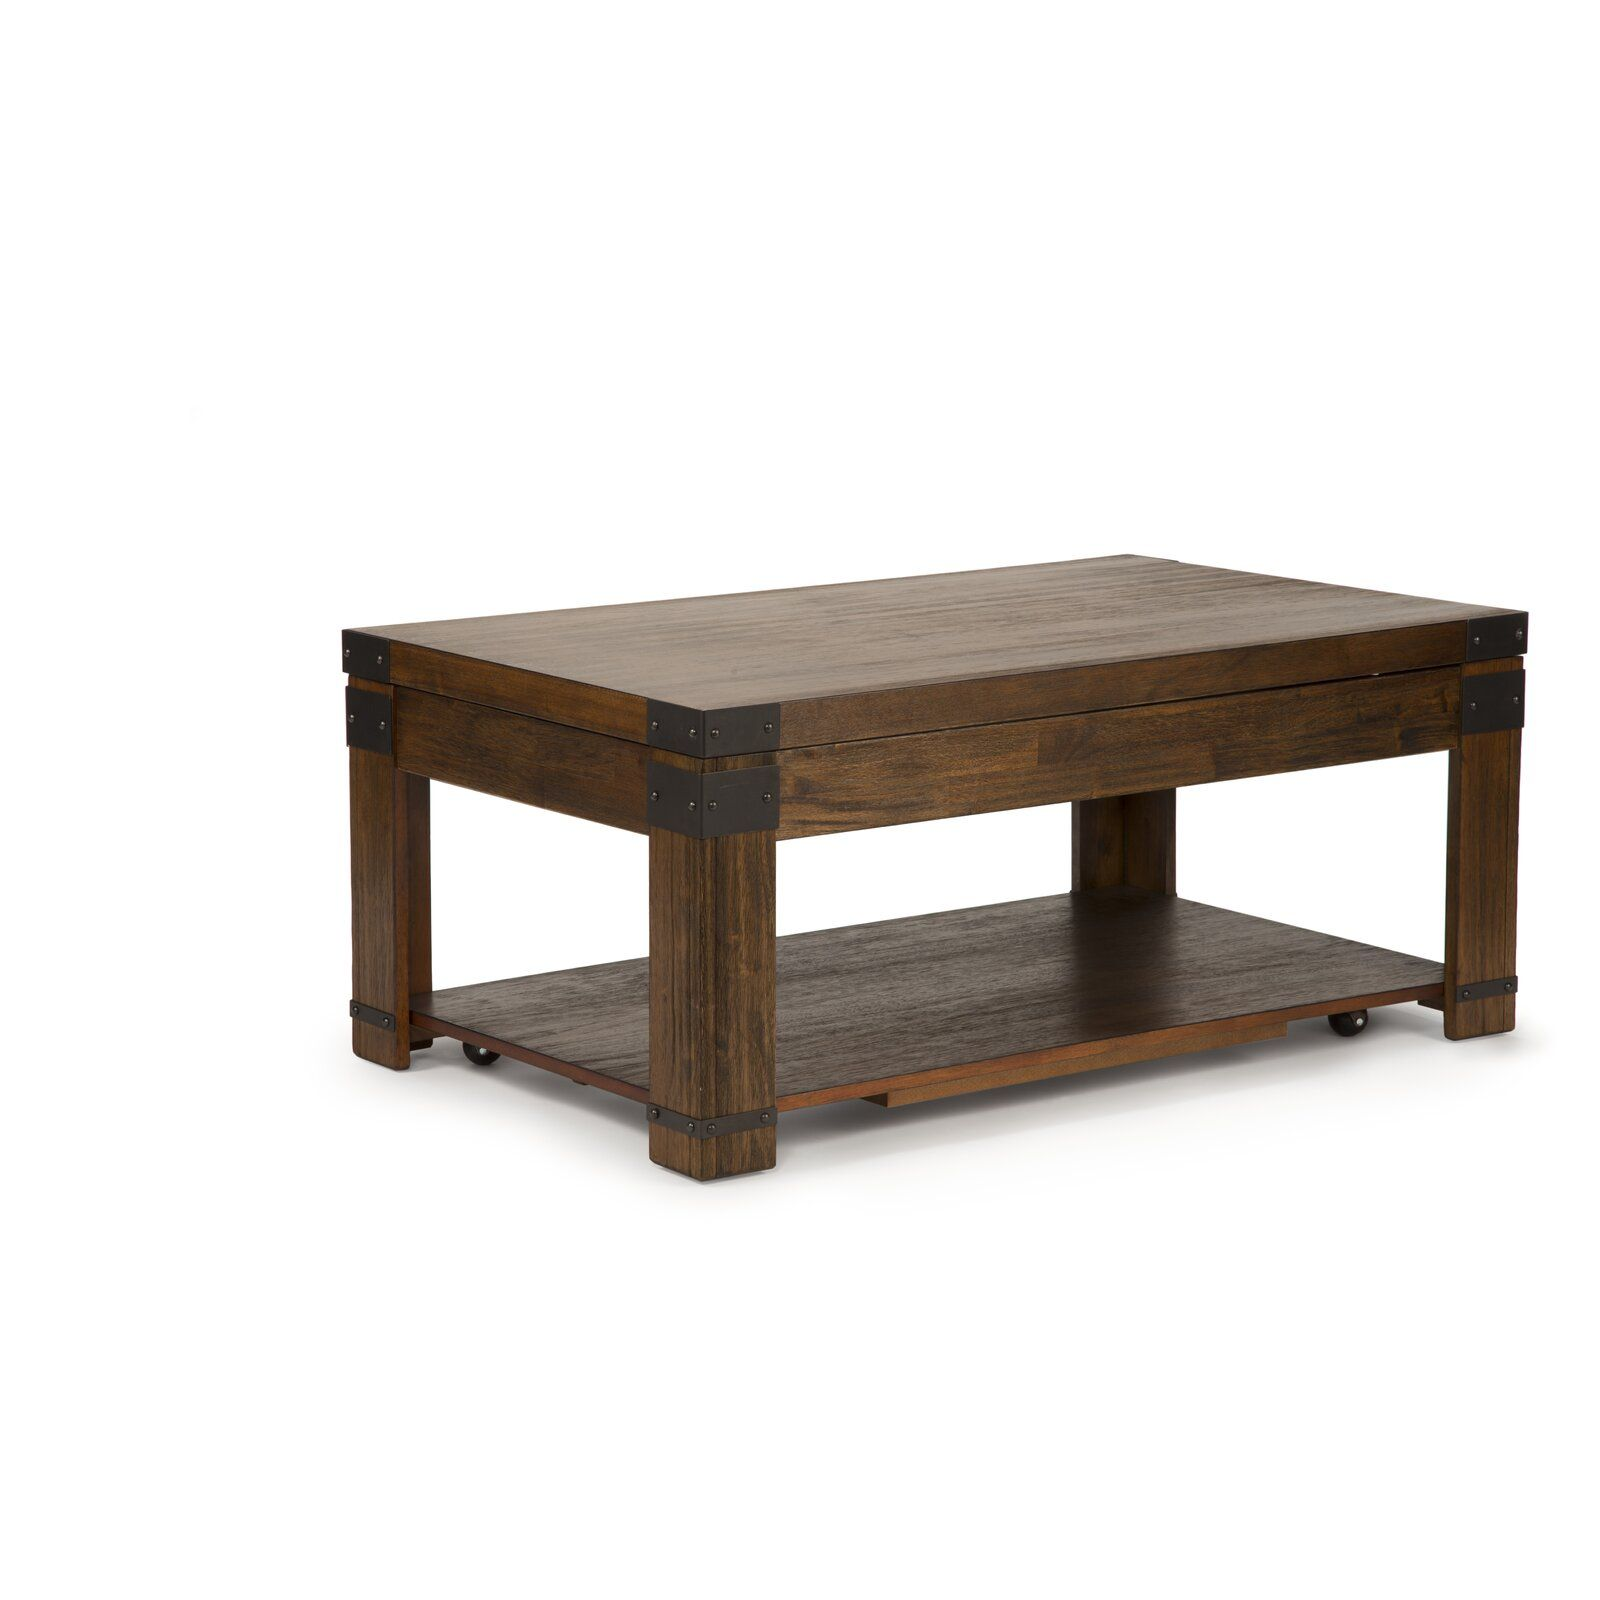 Traditional Dark Brown Lift Top Coffee Table Crestline In 2021 Coffee Table Lift Top Coffee Table Coffee Table With Casters [ 2296 x 2771 Pixel ]